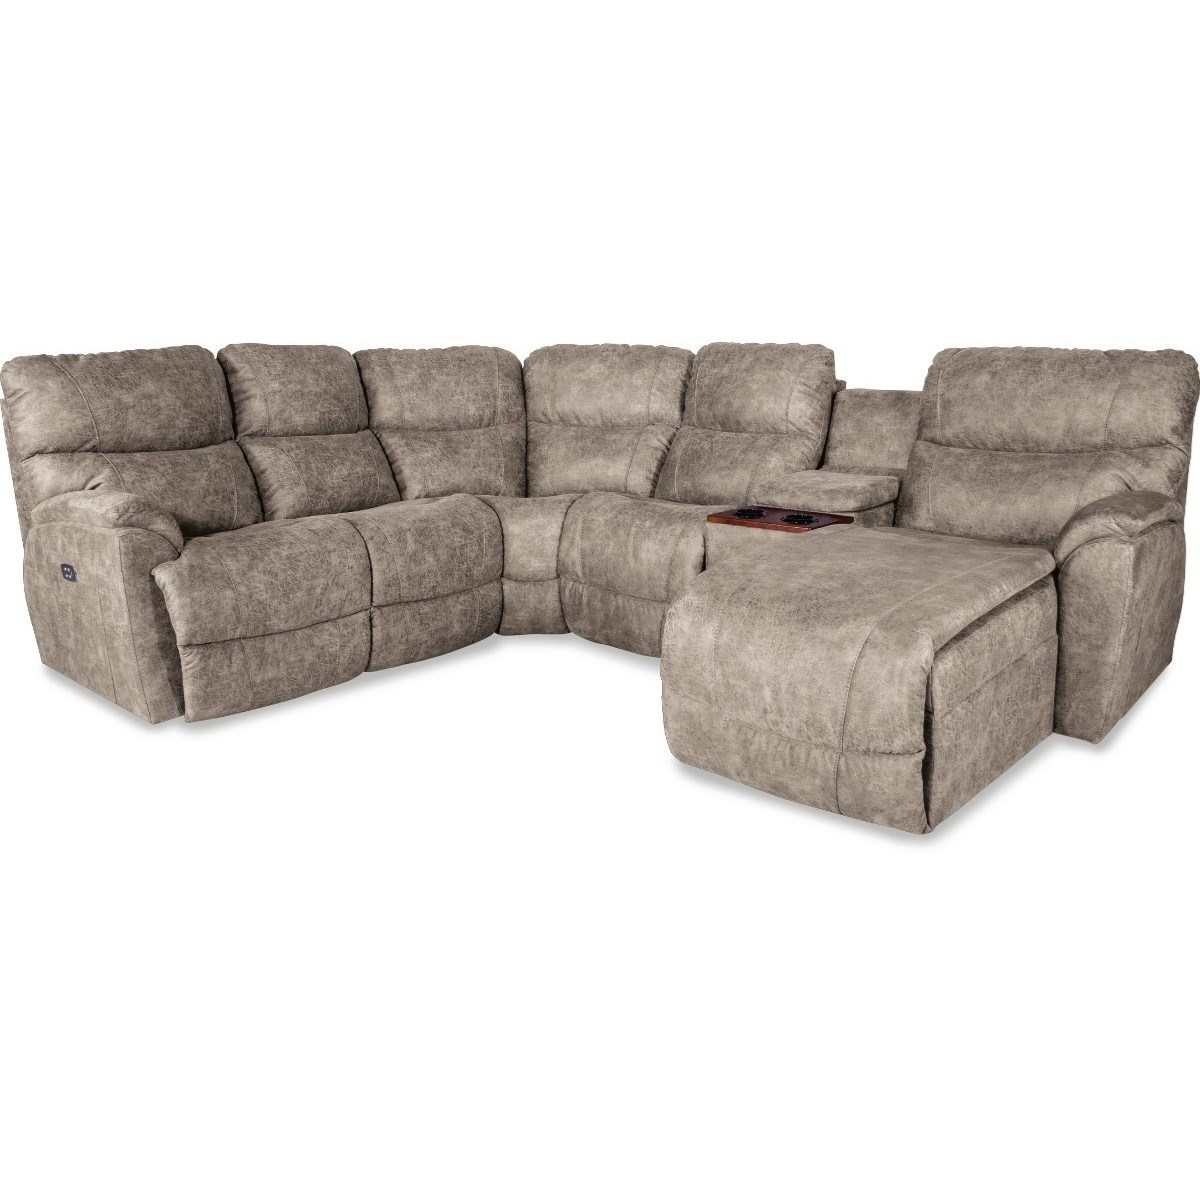 Five Piece Reclining Sofa with Left Sitting Tilt-Back Chaise and Cupholder Storage Console